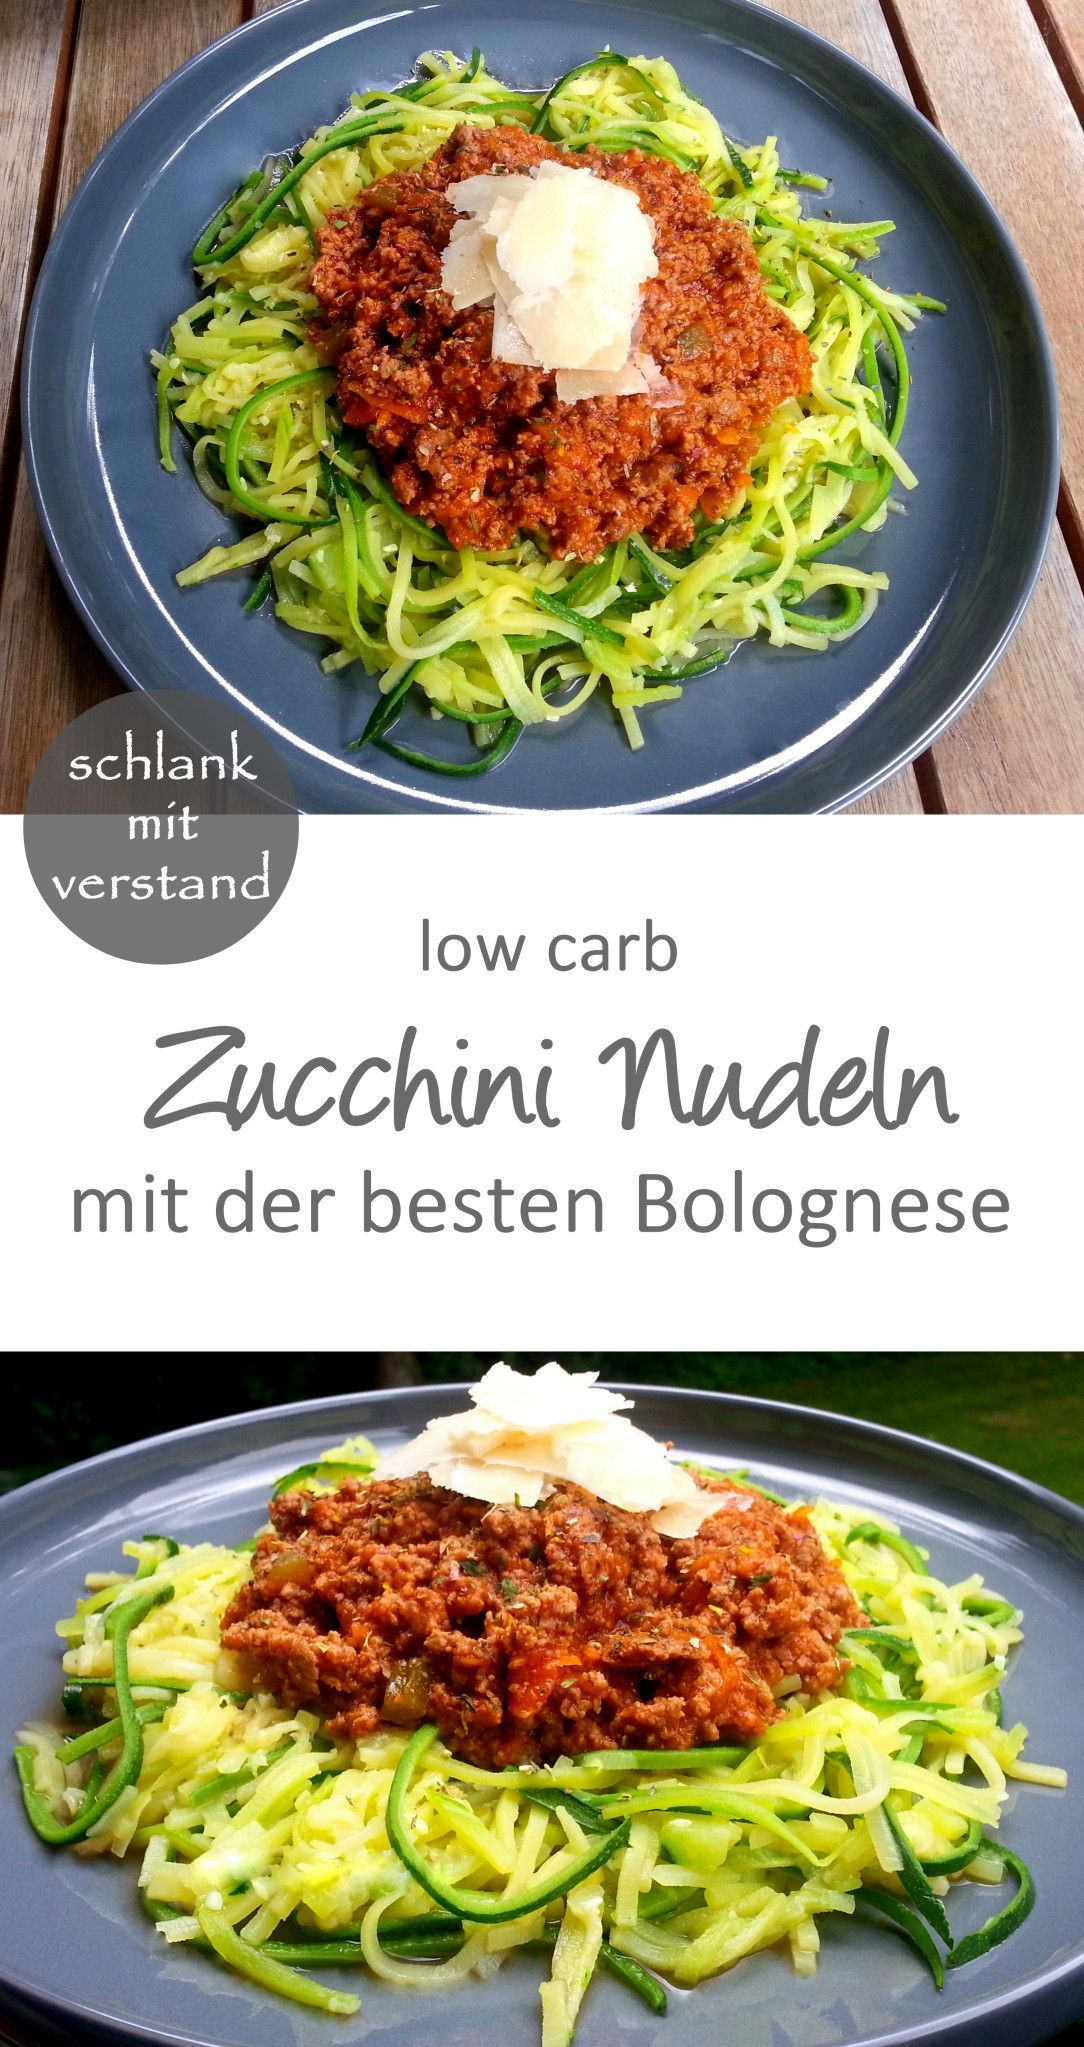 Zucchini Nudeln Bolognese  low carb  Zucchini Pasta Bolognese  low carb  slim with mind